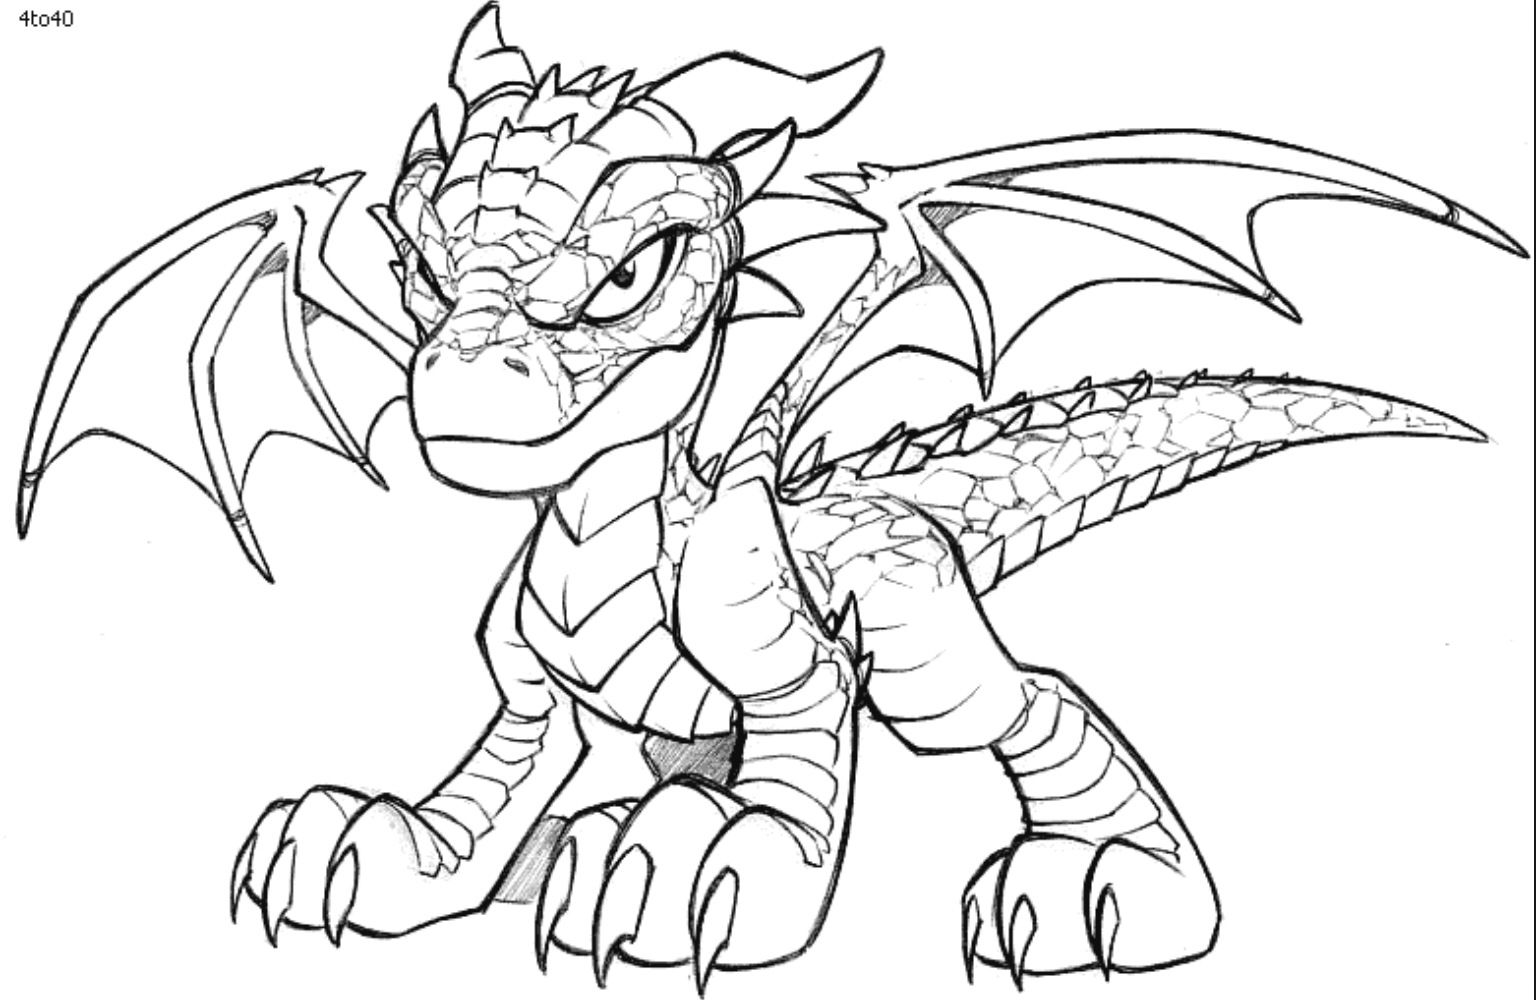 Pin By Esmee Stadie On Dragons Dragon Coloring Page Kids Printable Coloring Pages Skull Coloring Pages